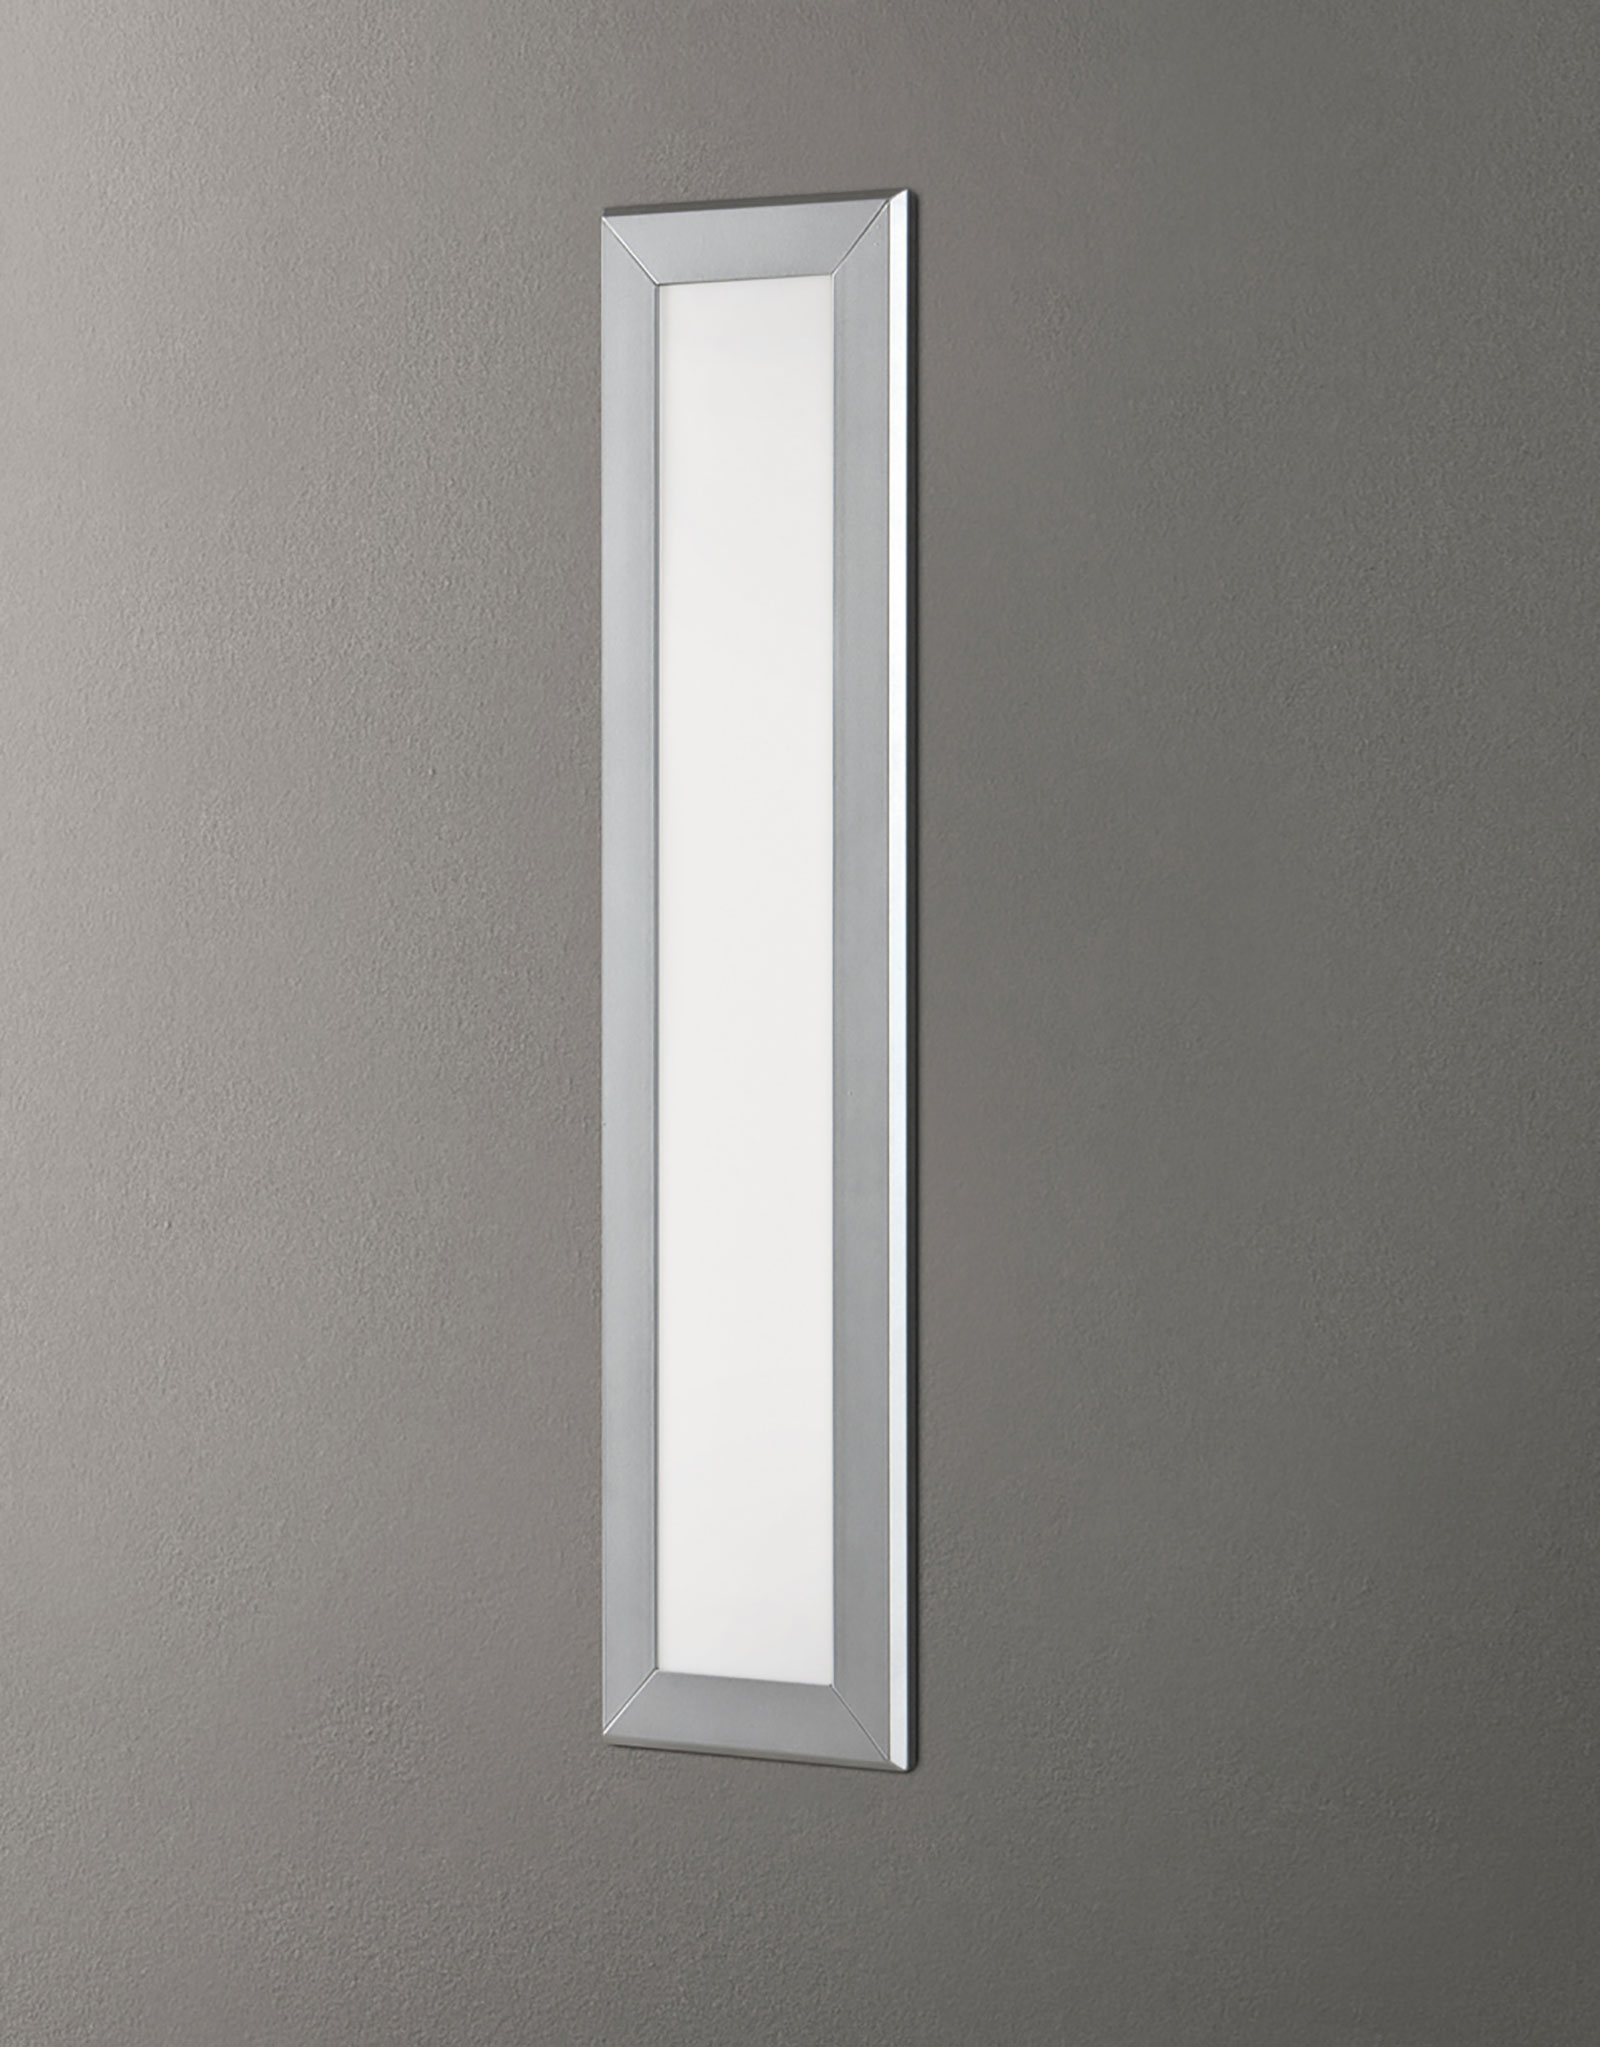 ocl lighting rep. zen sconce ocl · ze1-s1se-27-gw-smp-2 ocl lighting rep